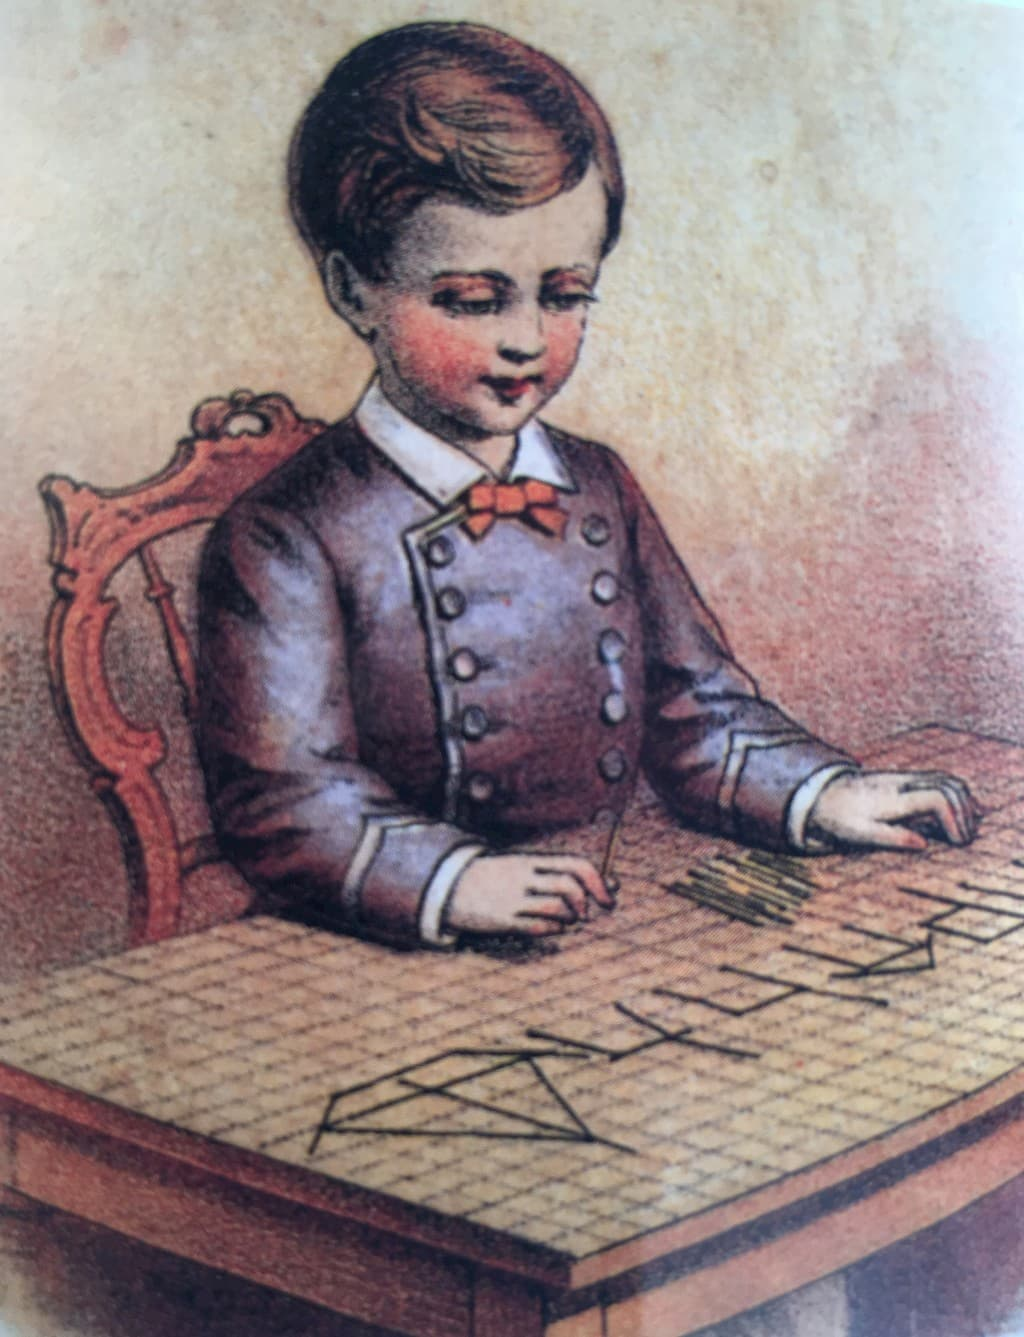 """Chromolithograph from """"Froebel's Kindergarten Occupations for the Family,"""" a kindergarten teaching set for home use. E. Steiger & Company, New York, 1877"""